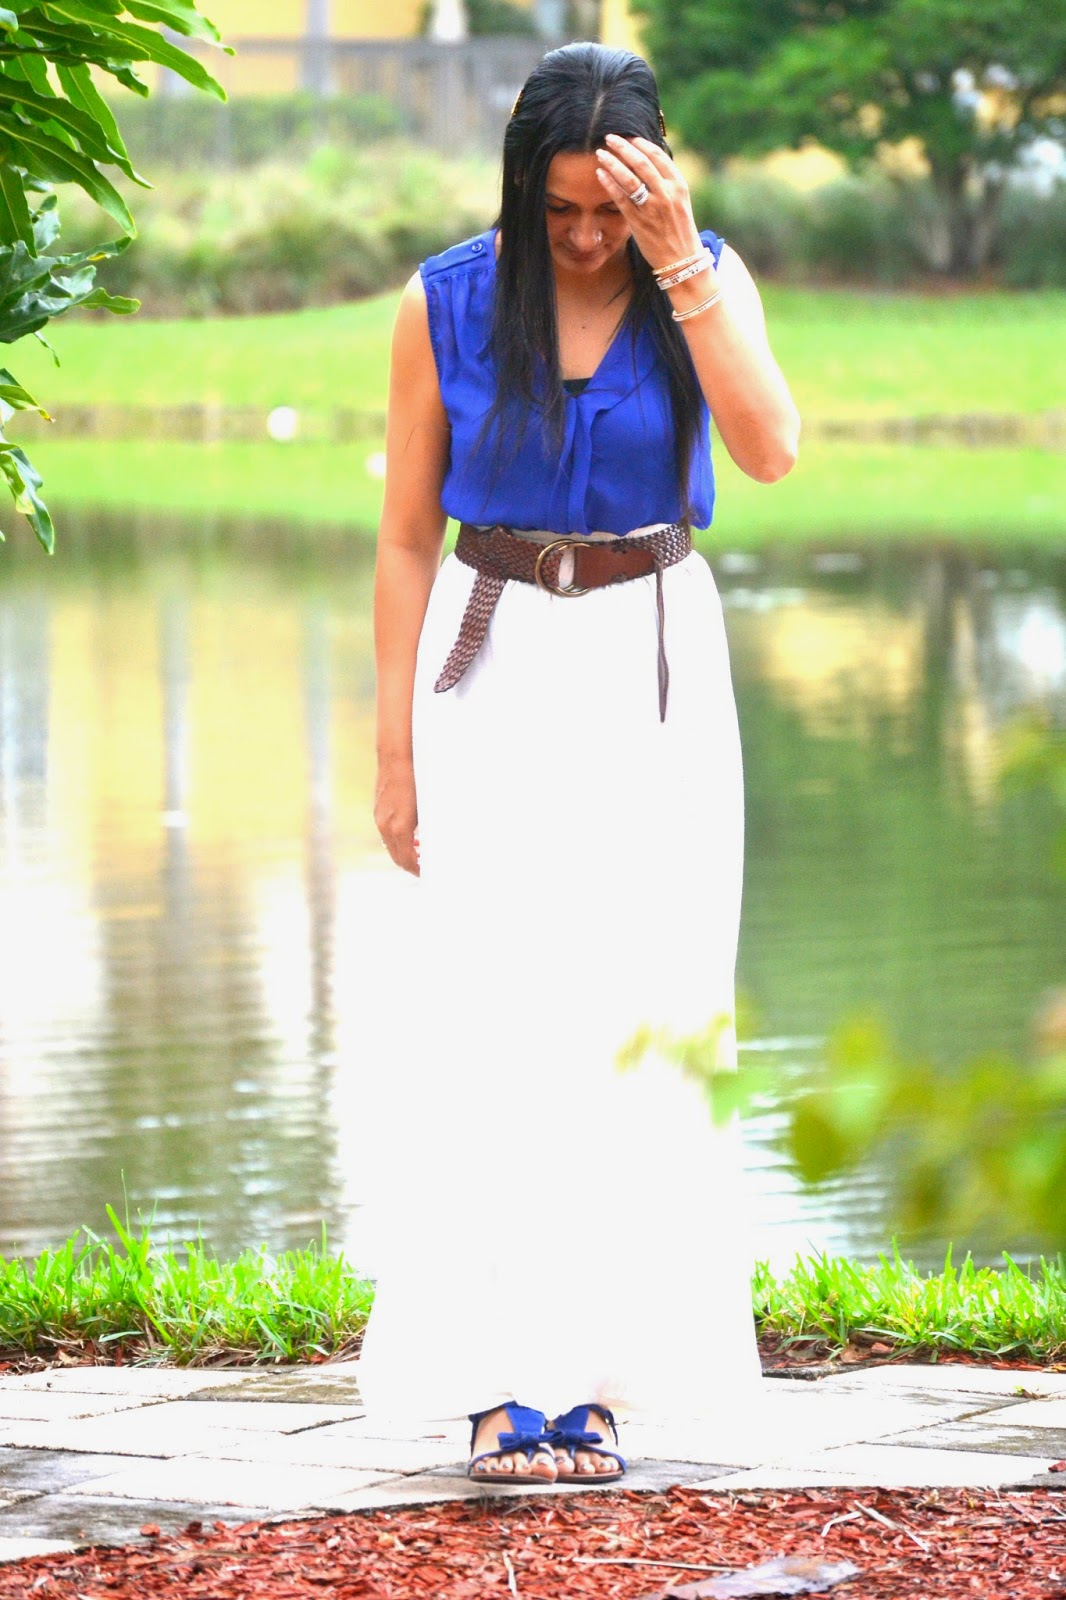 Boho Fashion sheer blue blouse white maxi skirt kim kardashian headpiece www.sandysandhu.co